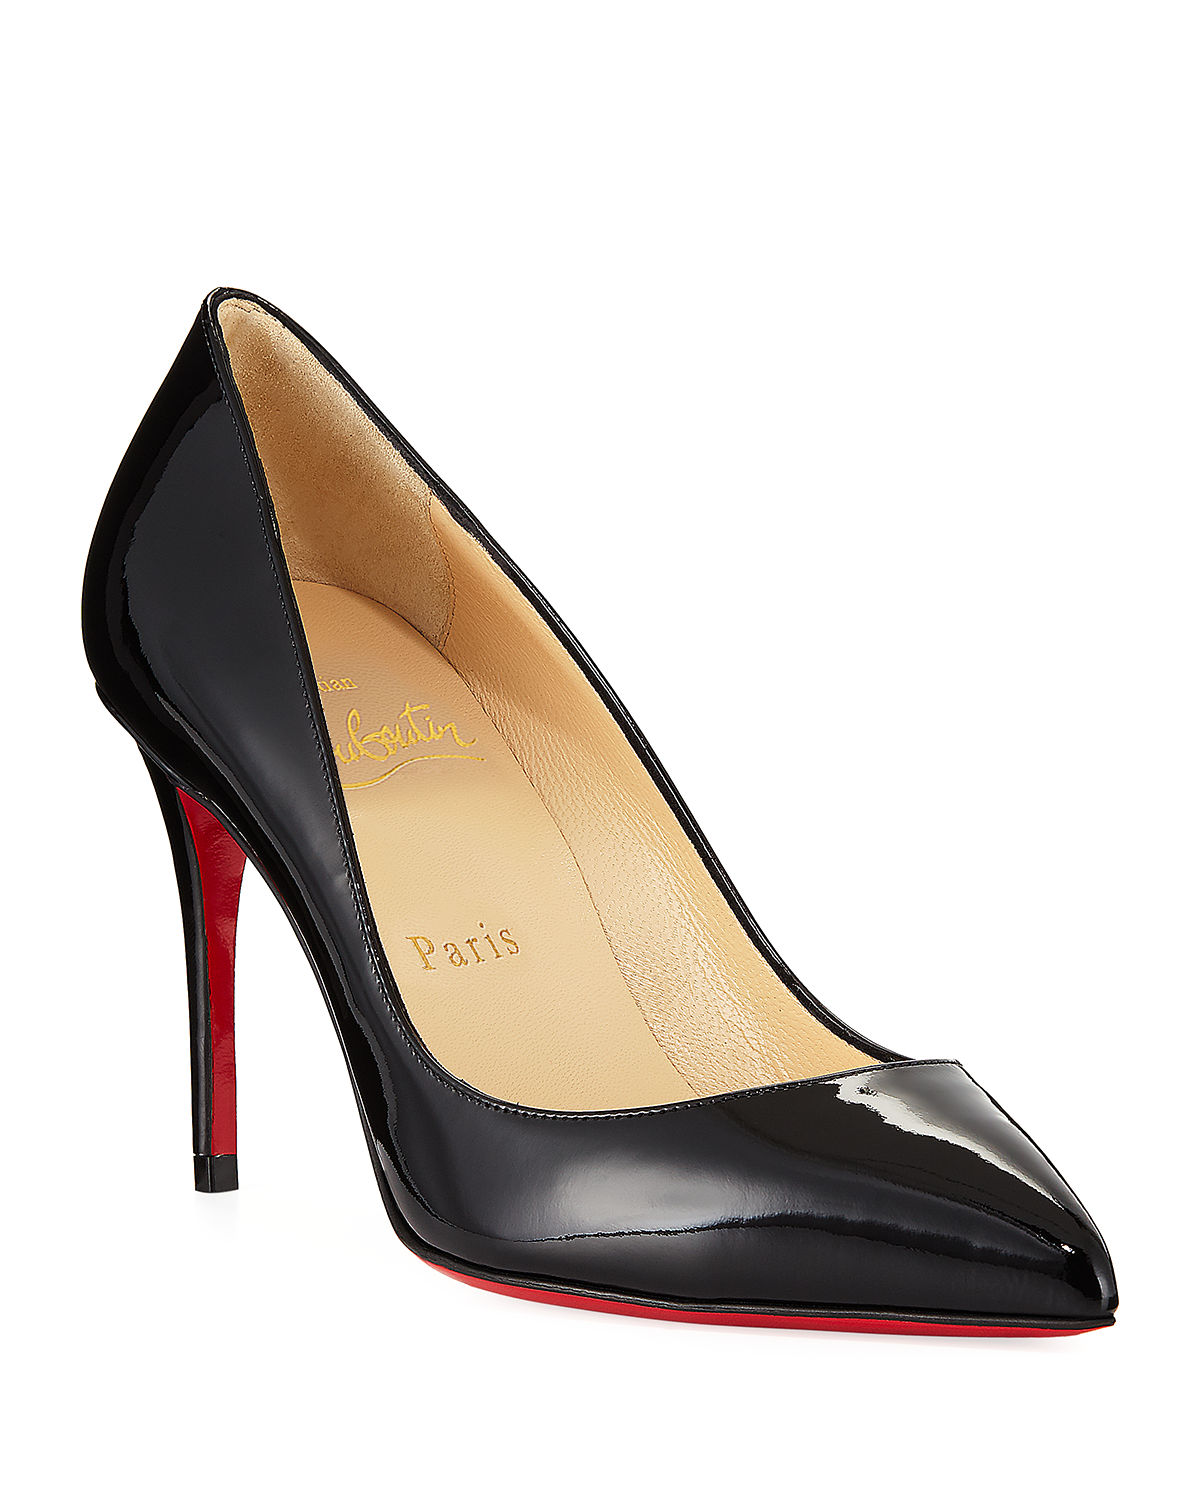 huge discount 395de 28776 Pigalle Follies 85mm Patent Red Sole Pump